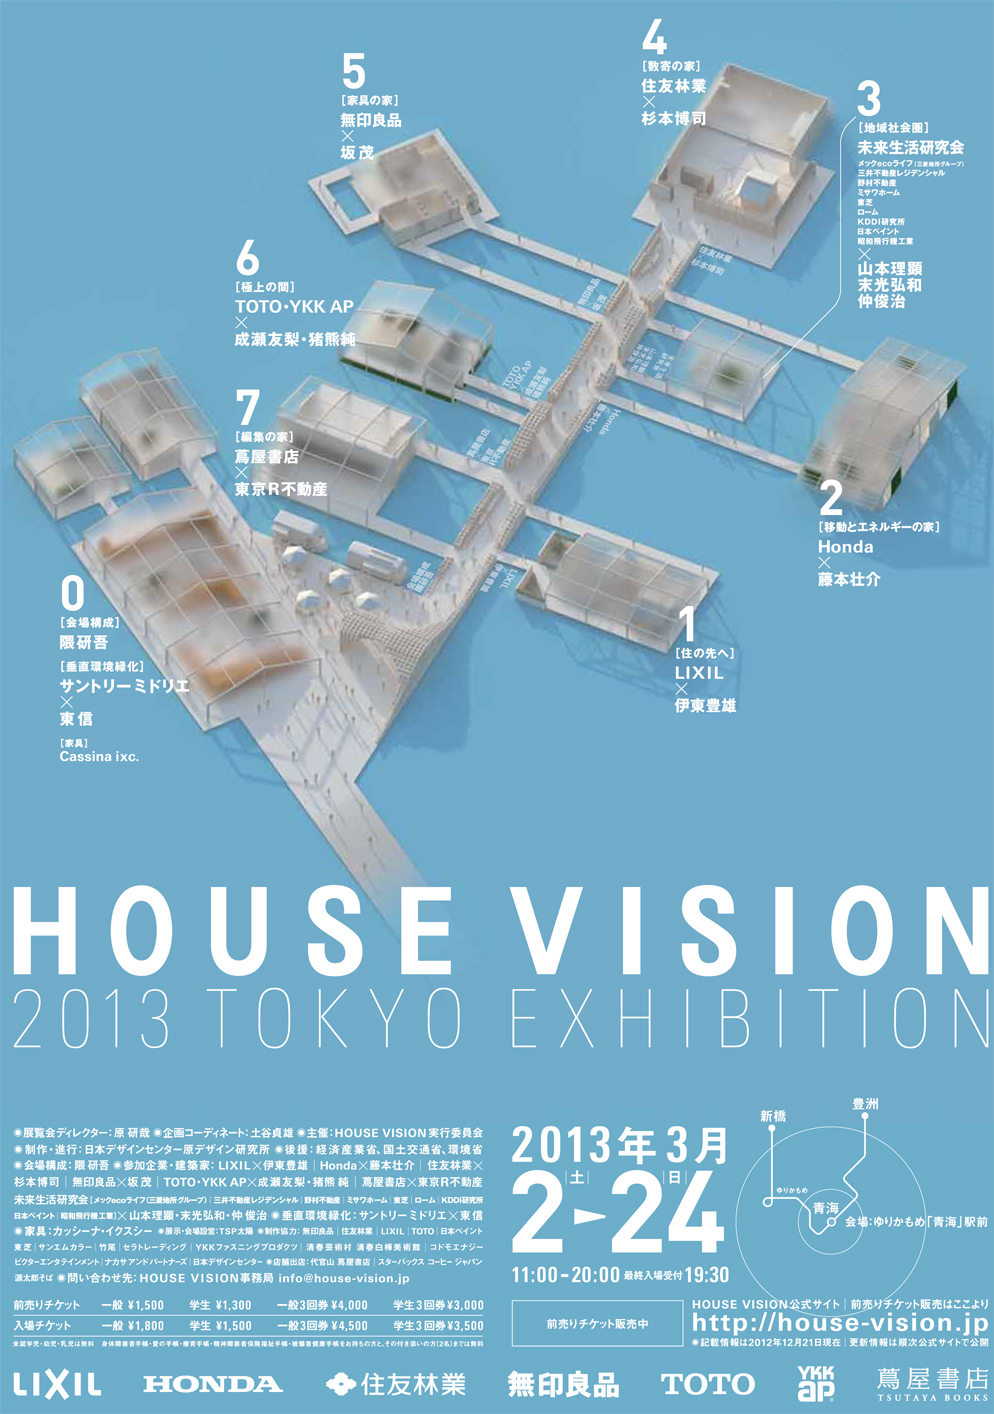 14housevision